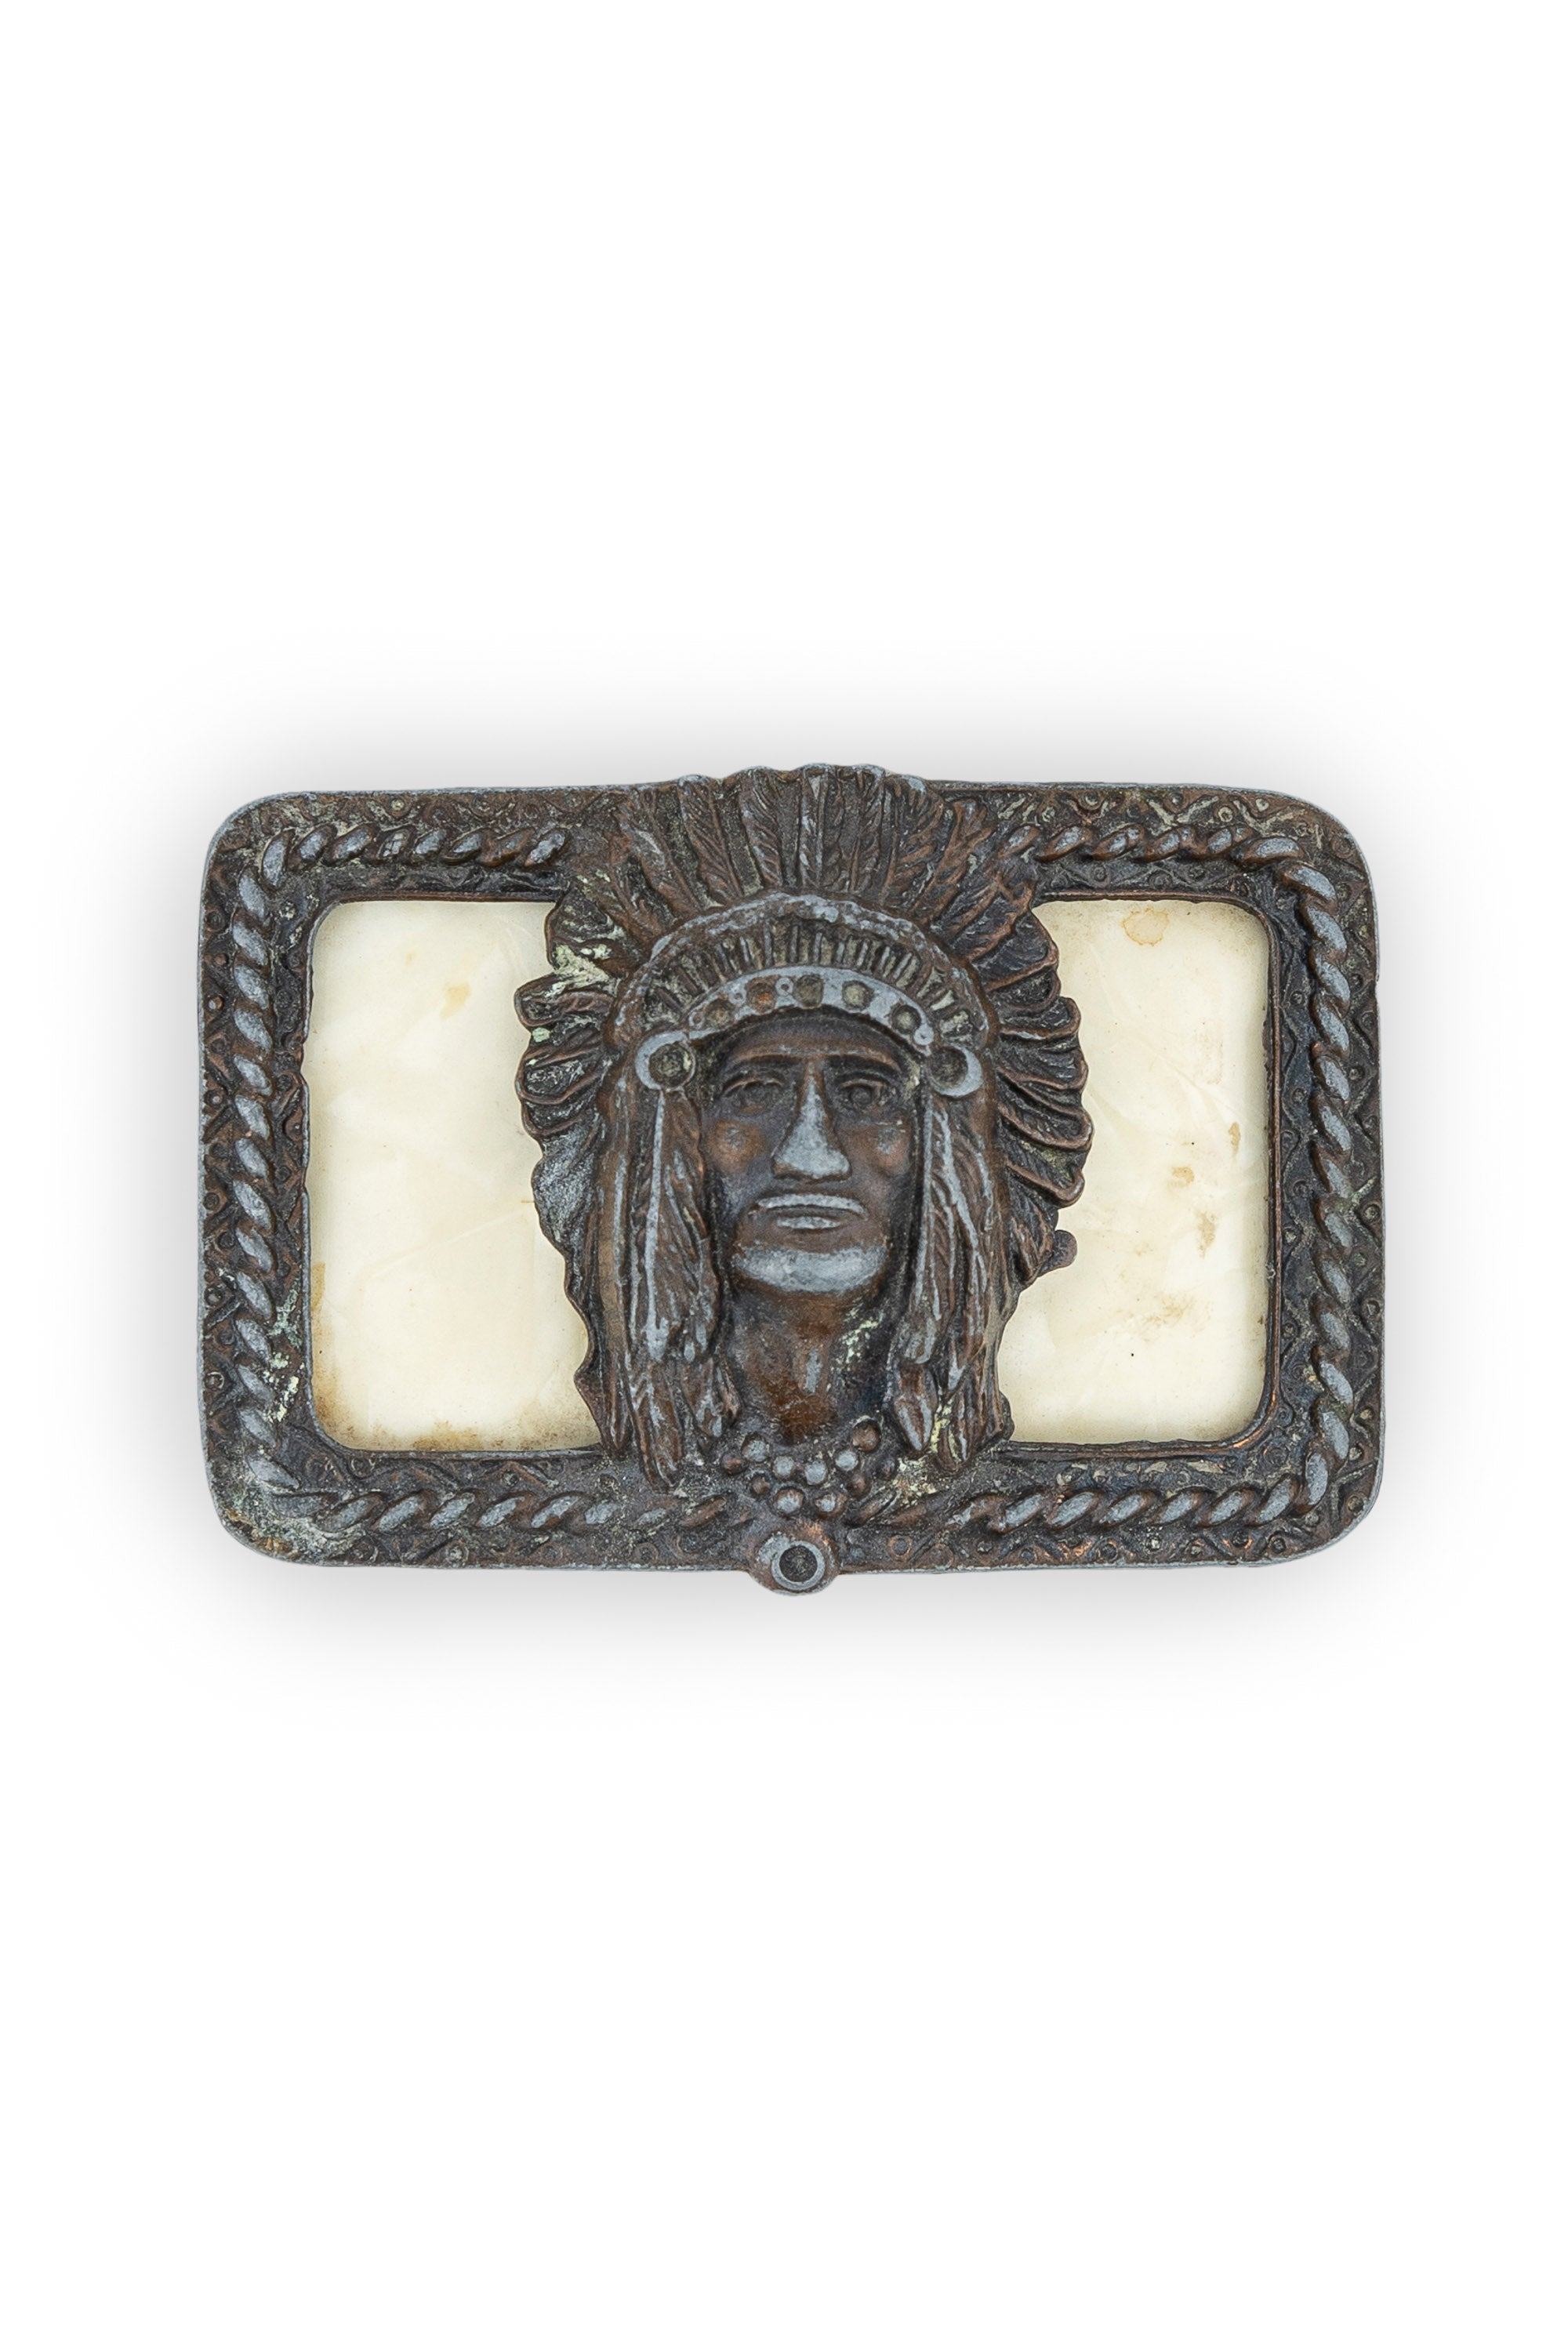 Buckle, Indian Chief, Pearlized Lucite, Vintage '50s, 107